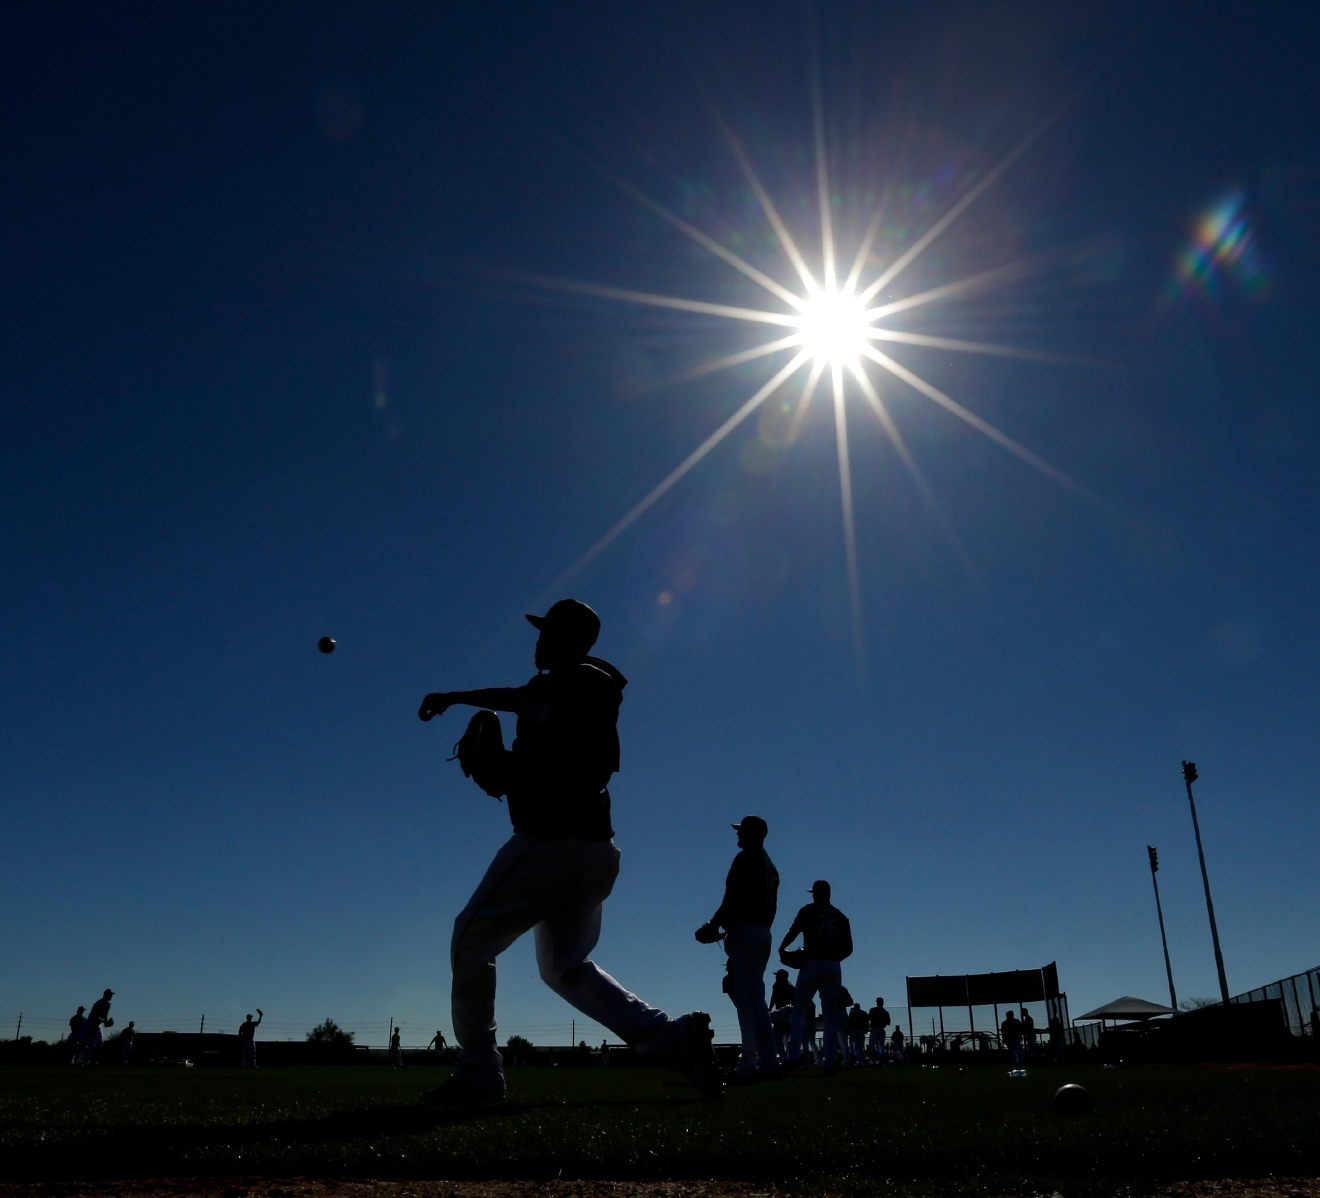 Seattle Mariners pitcher Edwin Diaz throws during spring training baseball practice, Tuesday, Feb. 21, 2017, in Peoria, Ariz. (AP Photo/Charlie Riedel)